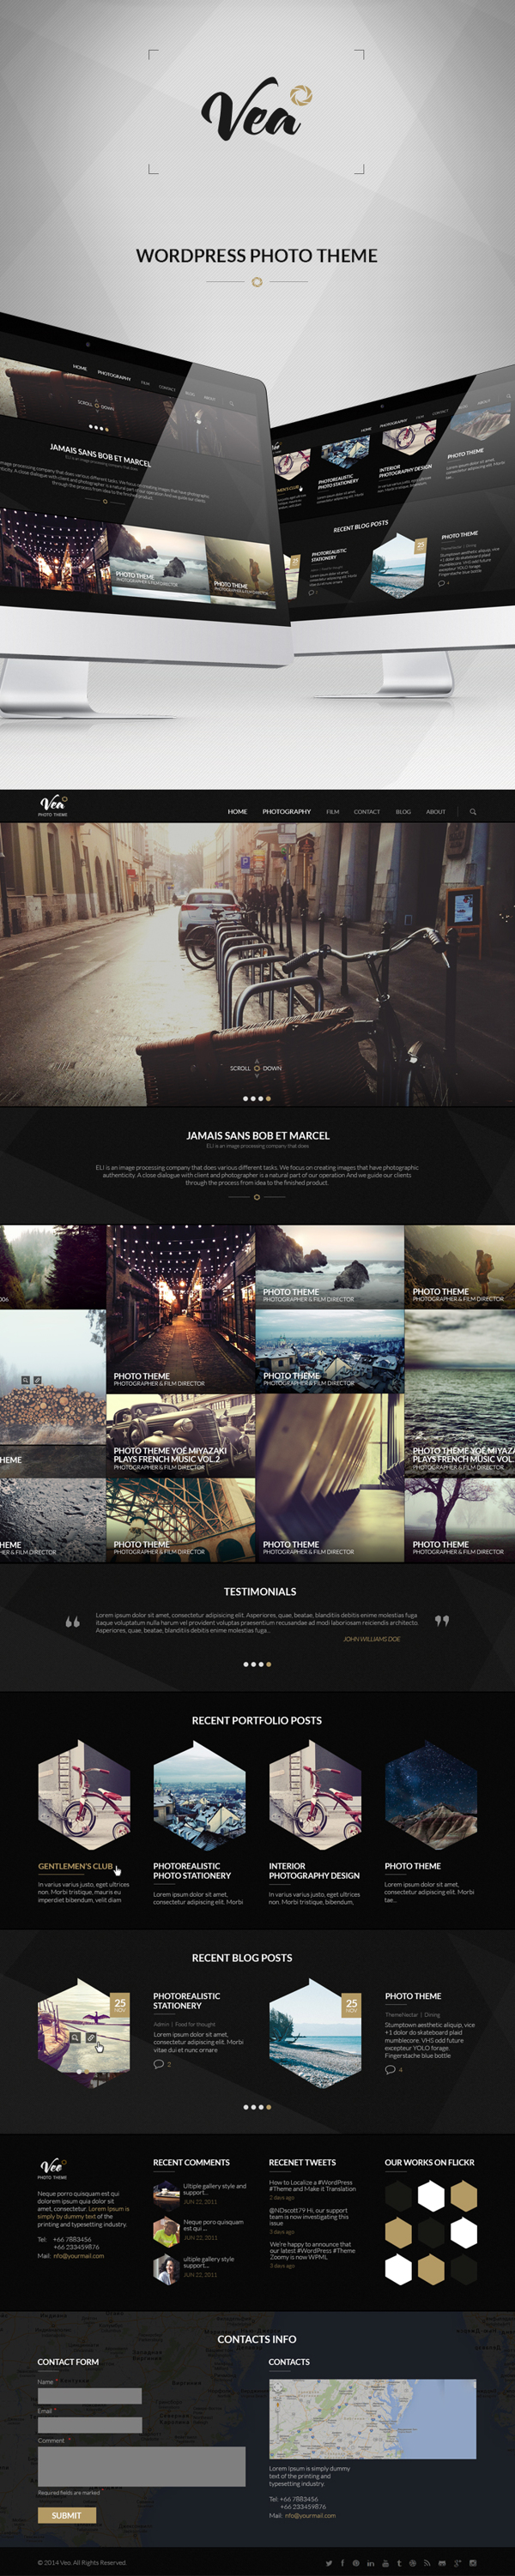 WP PHOTO THEME  on Behance